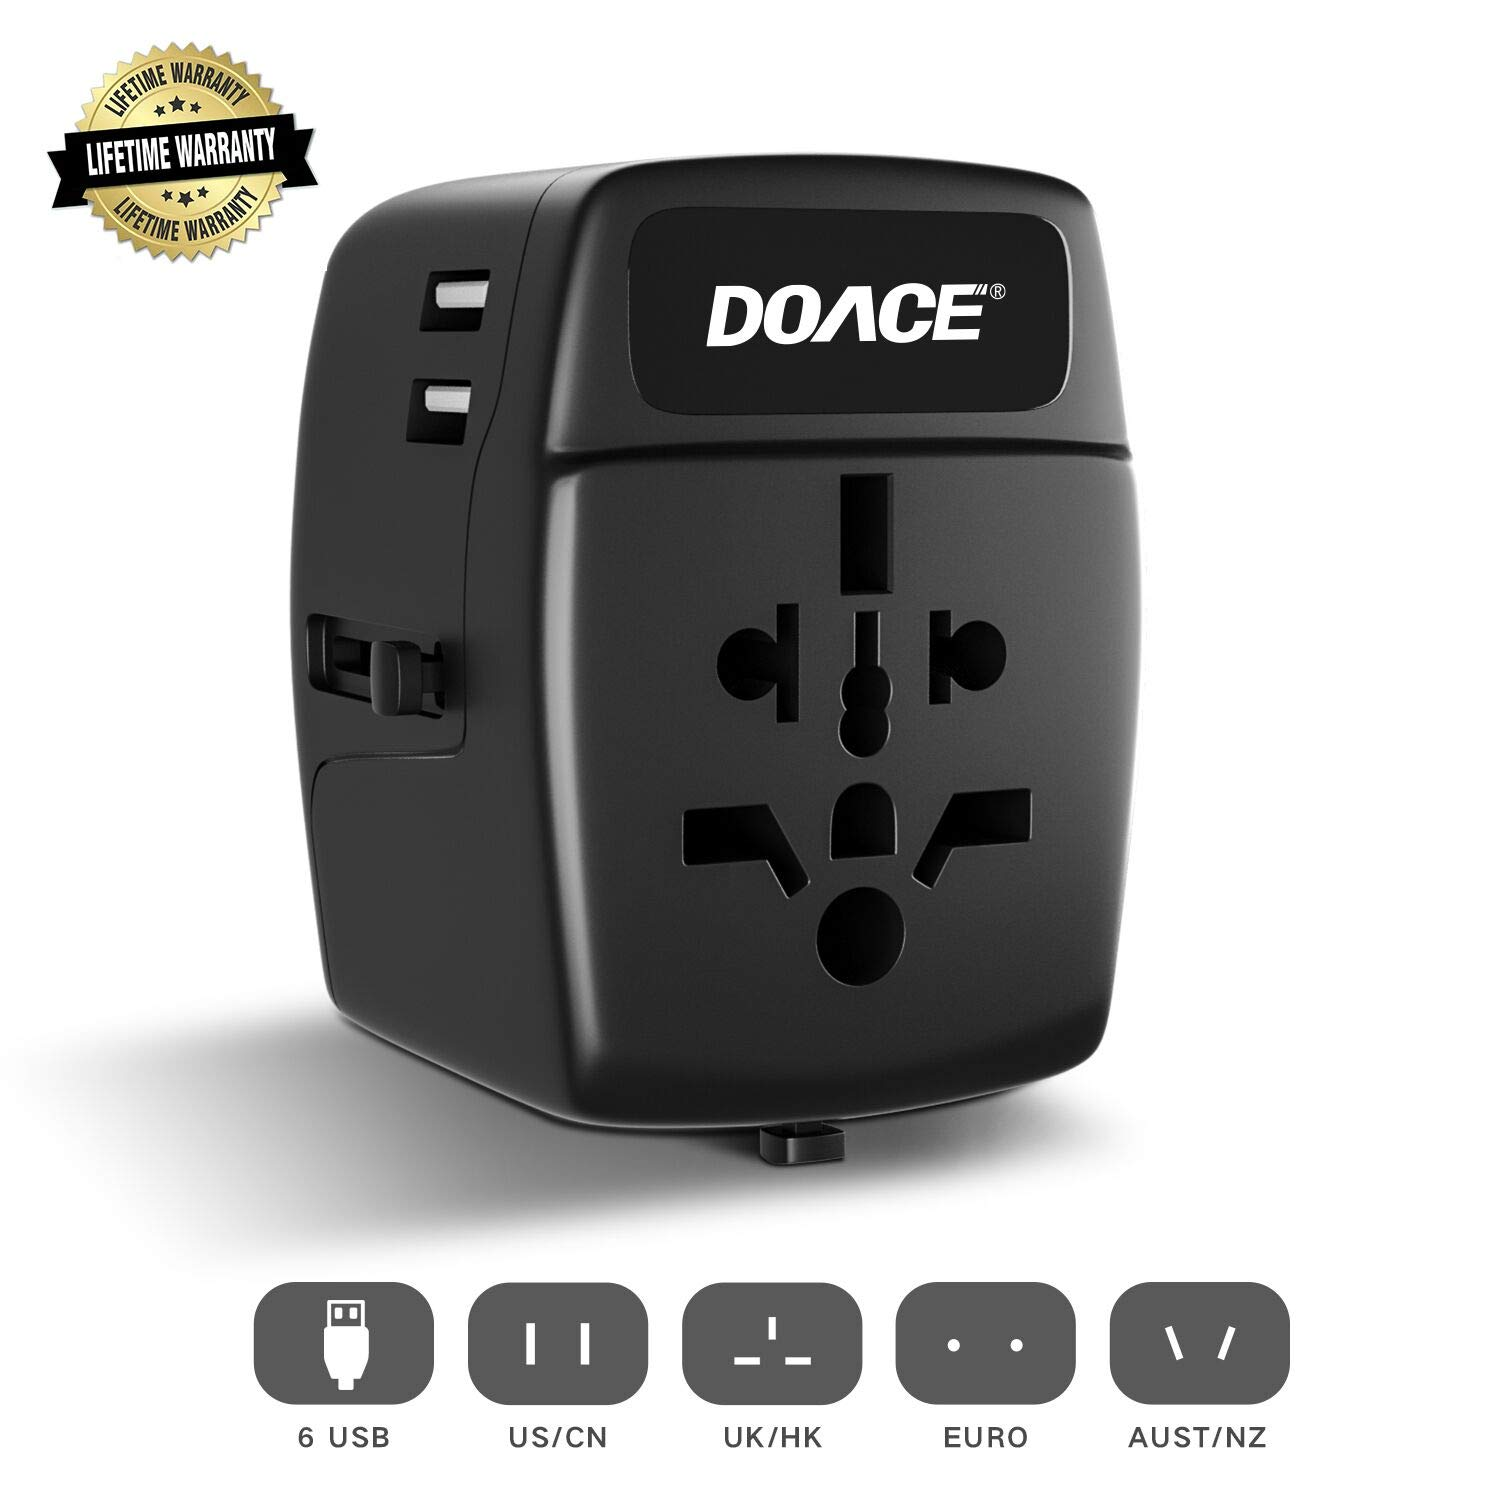 Universal Travel Adapter with 6-Port USB, DOACE All-in-one International Power Adapter with Suitcase Model, Wall Charger for UK, EU, AU, Asia, 150+ Countries (Black)